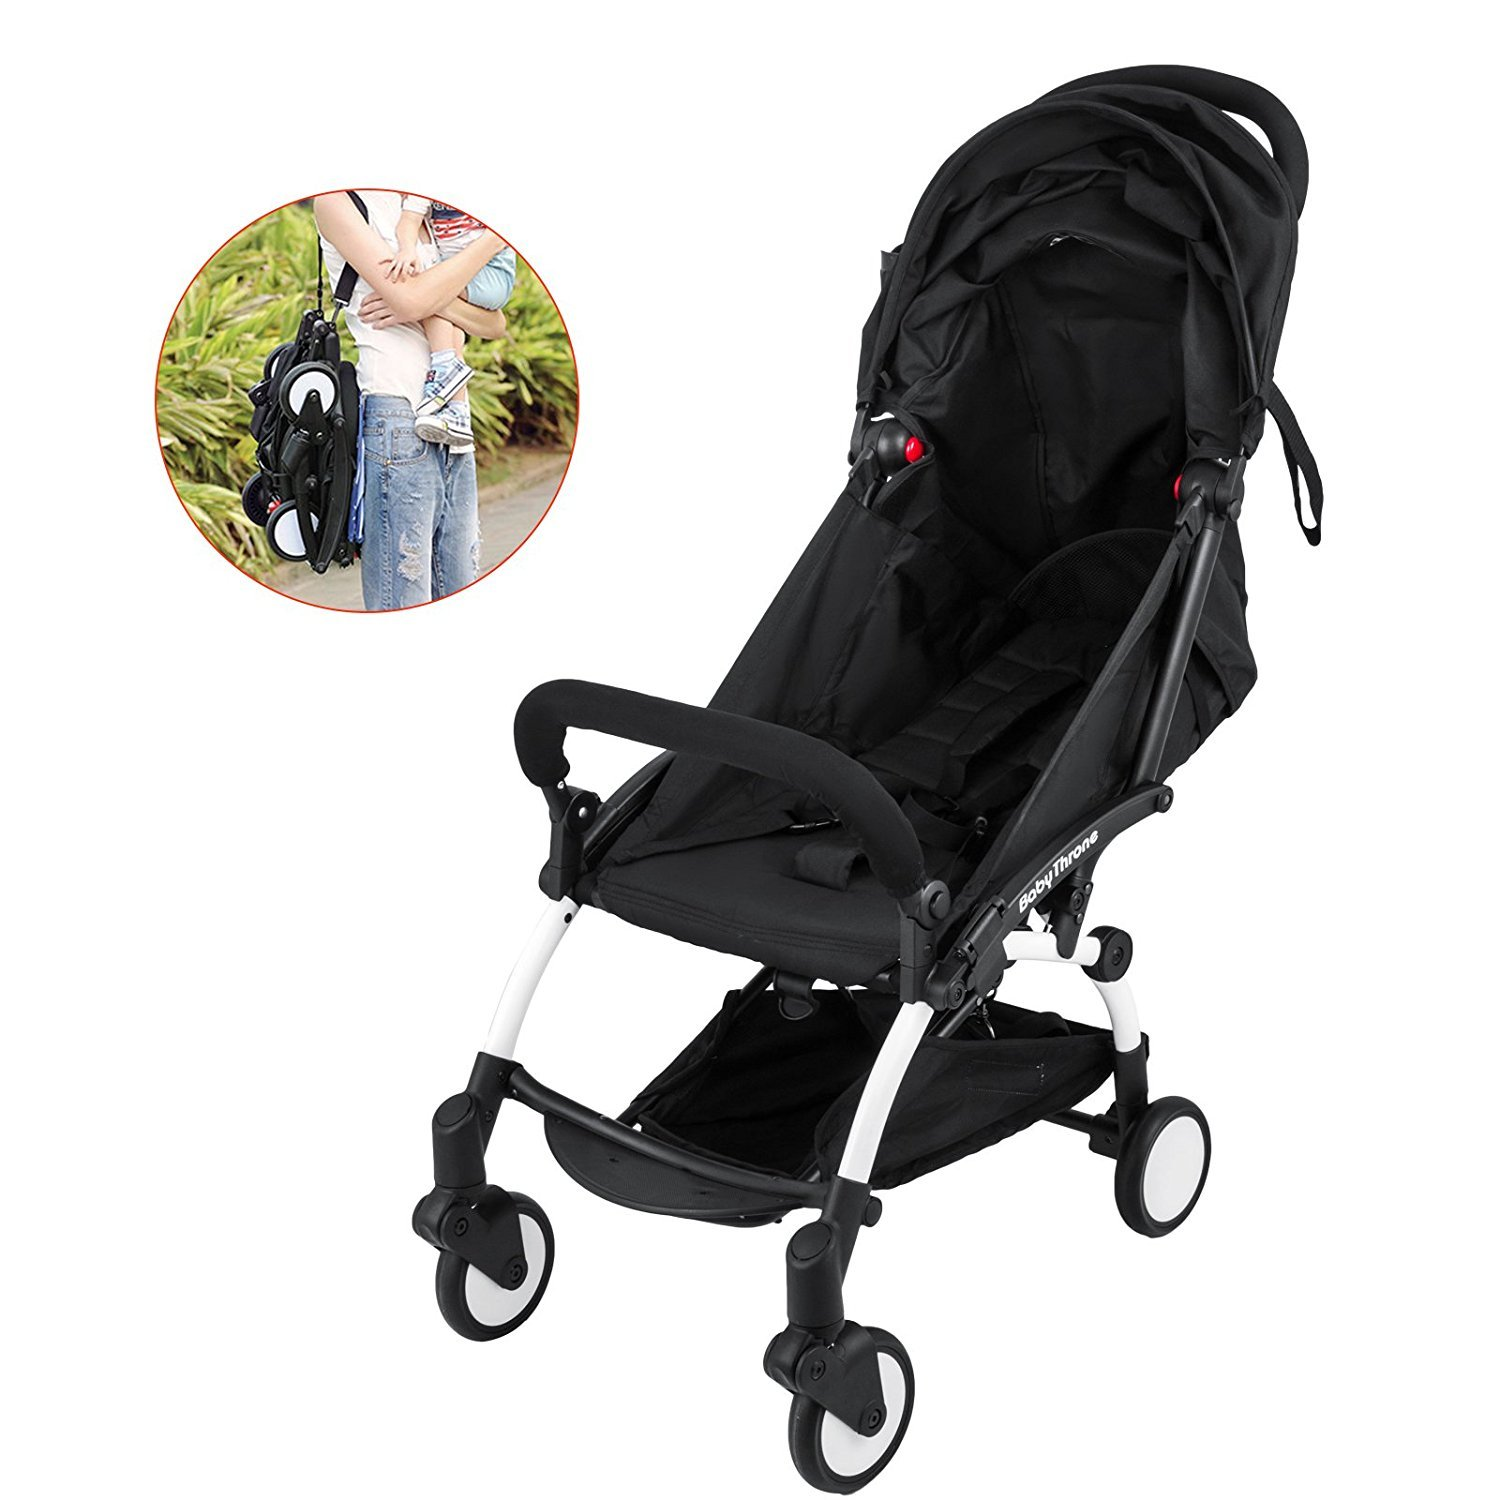 Mophorn Mini Folding Baby Stroller 2 in 1 Lightweight for 6 Month and Up to 15KG Baby Travel System Stroller Small Pushchair 360 Degree Swivel Front Wheel Strollers with 5-Point Lock Mini Stroller